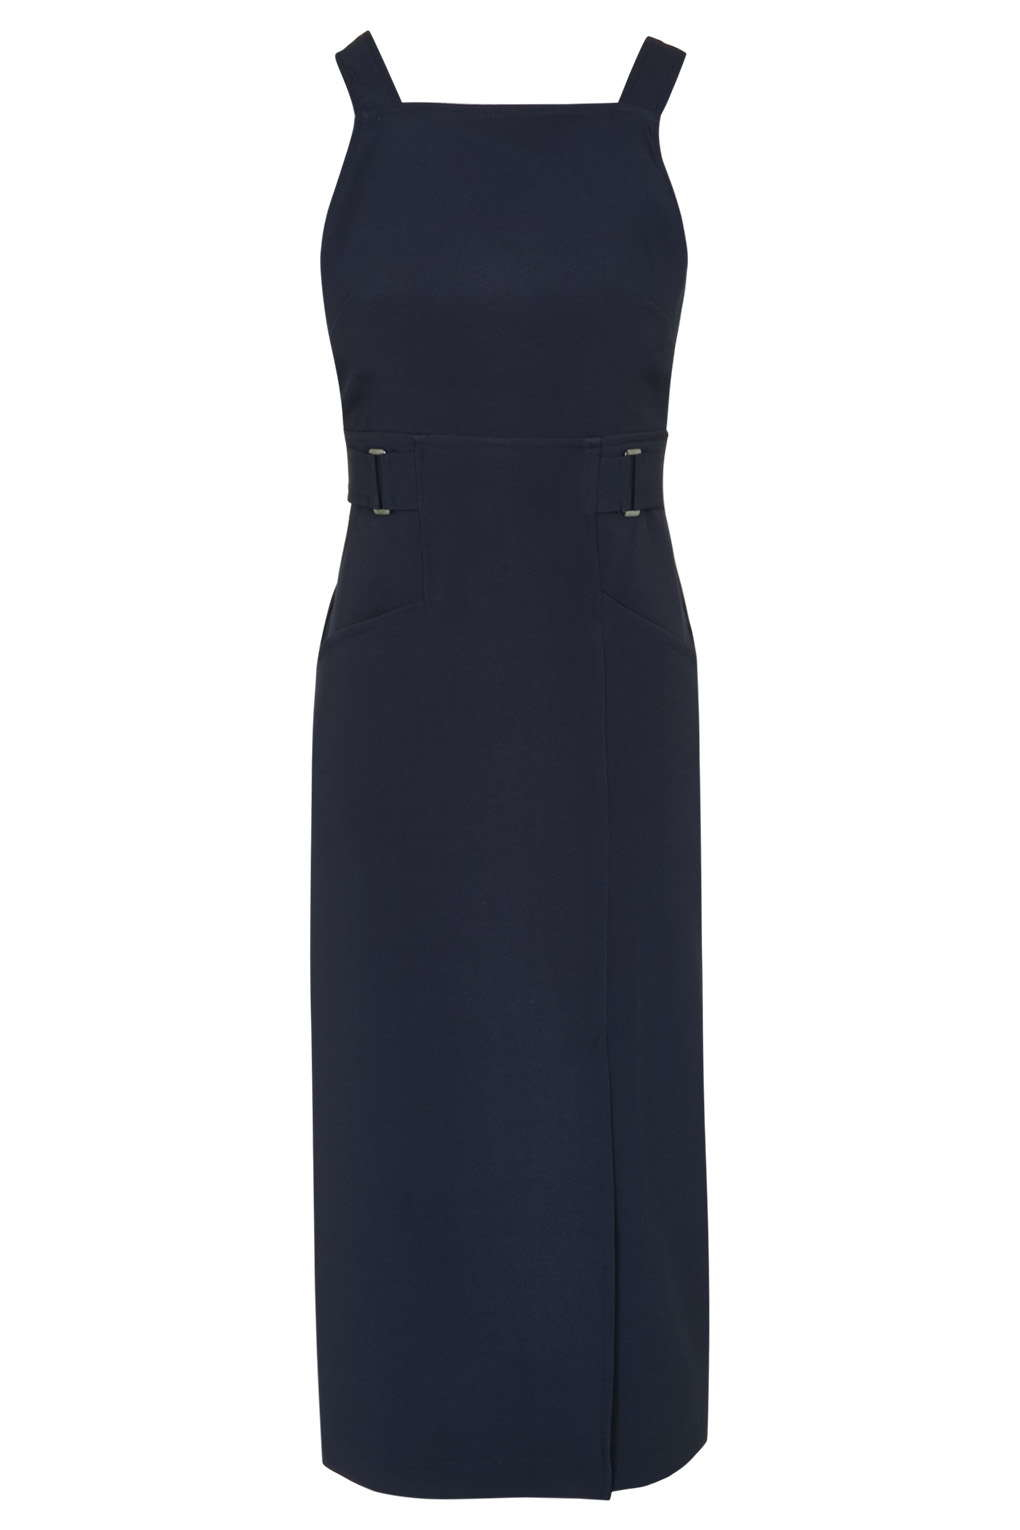 Topshop Navy Pinafore Dress By Twin Sister In Blue Lyst